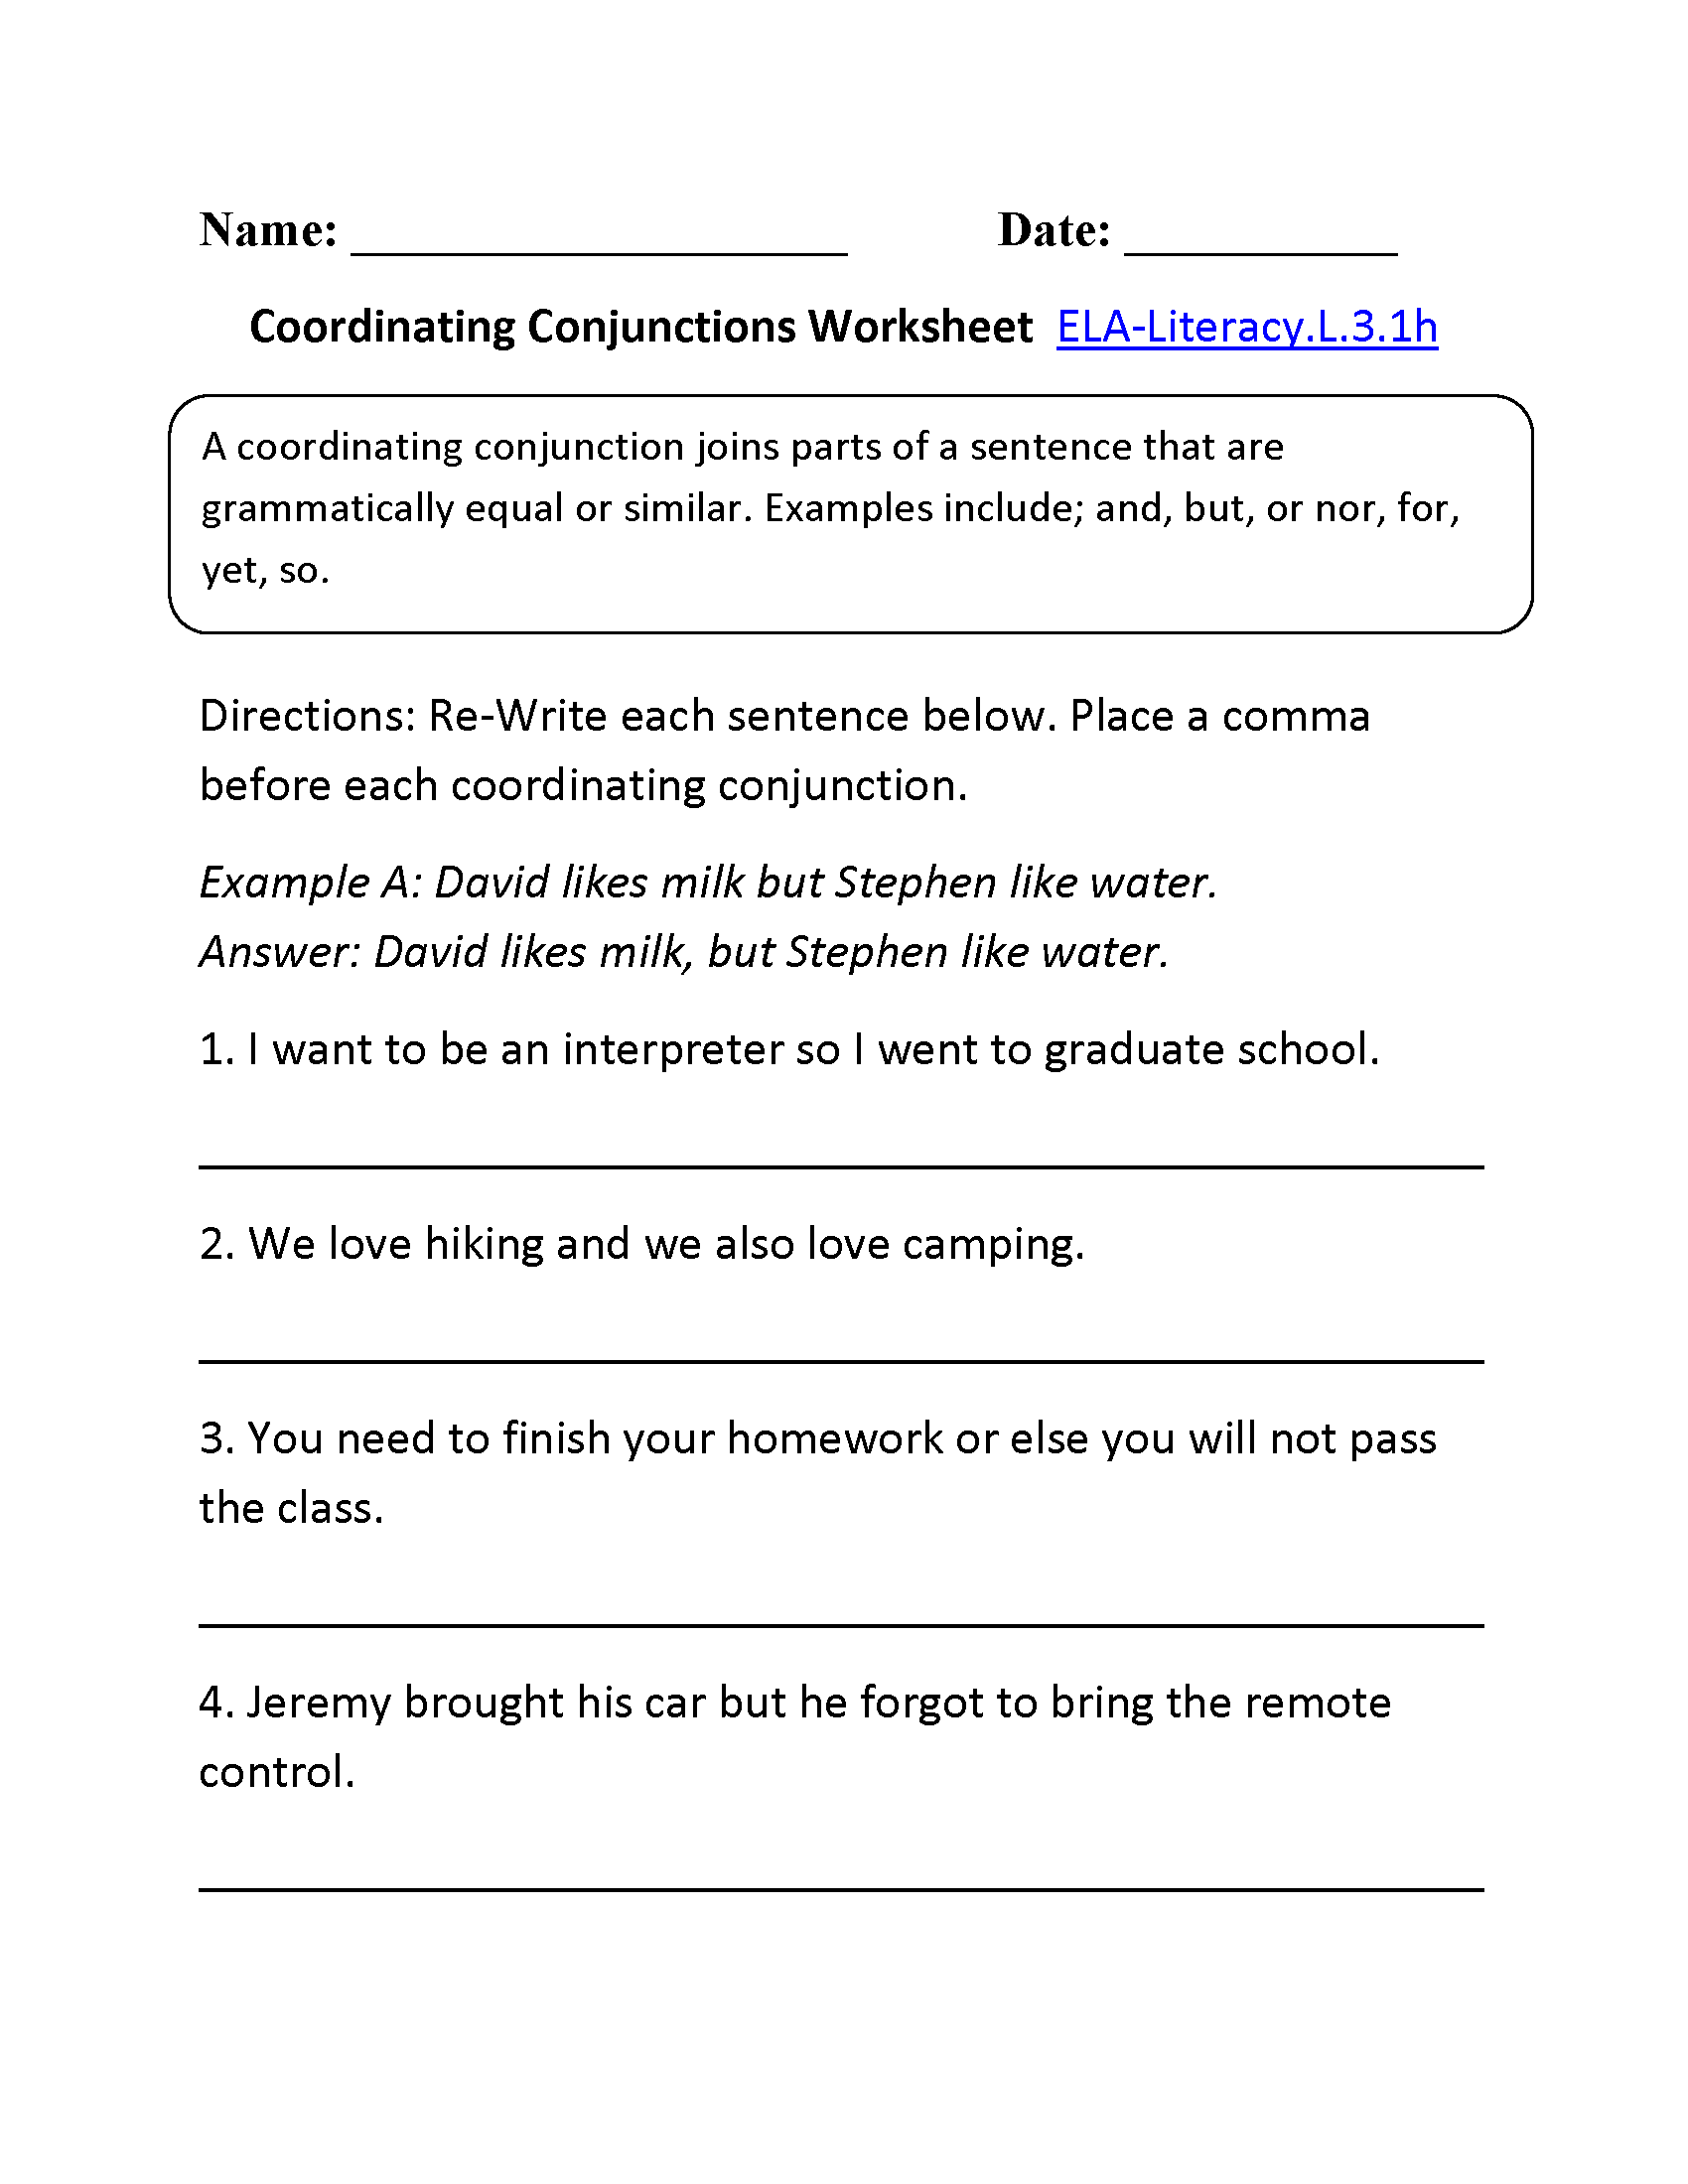 Worksheets Correlative Conjunctions Worksheet coordinating conjunctions worksheet 1 l 3 pinterest 1